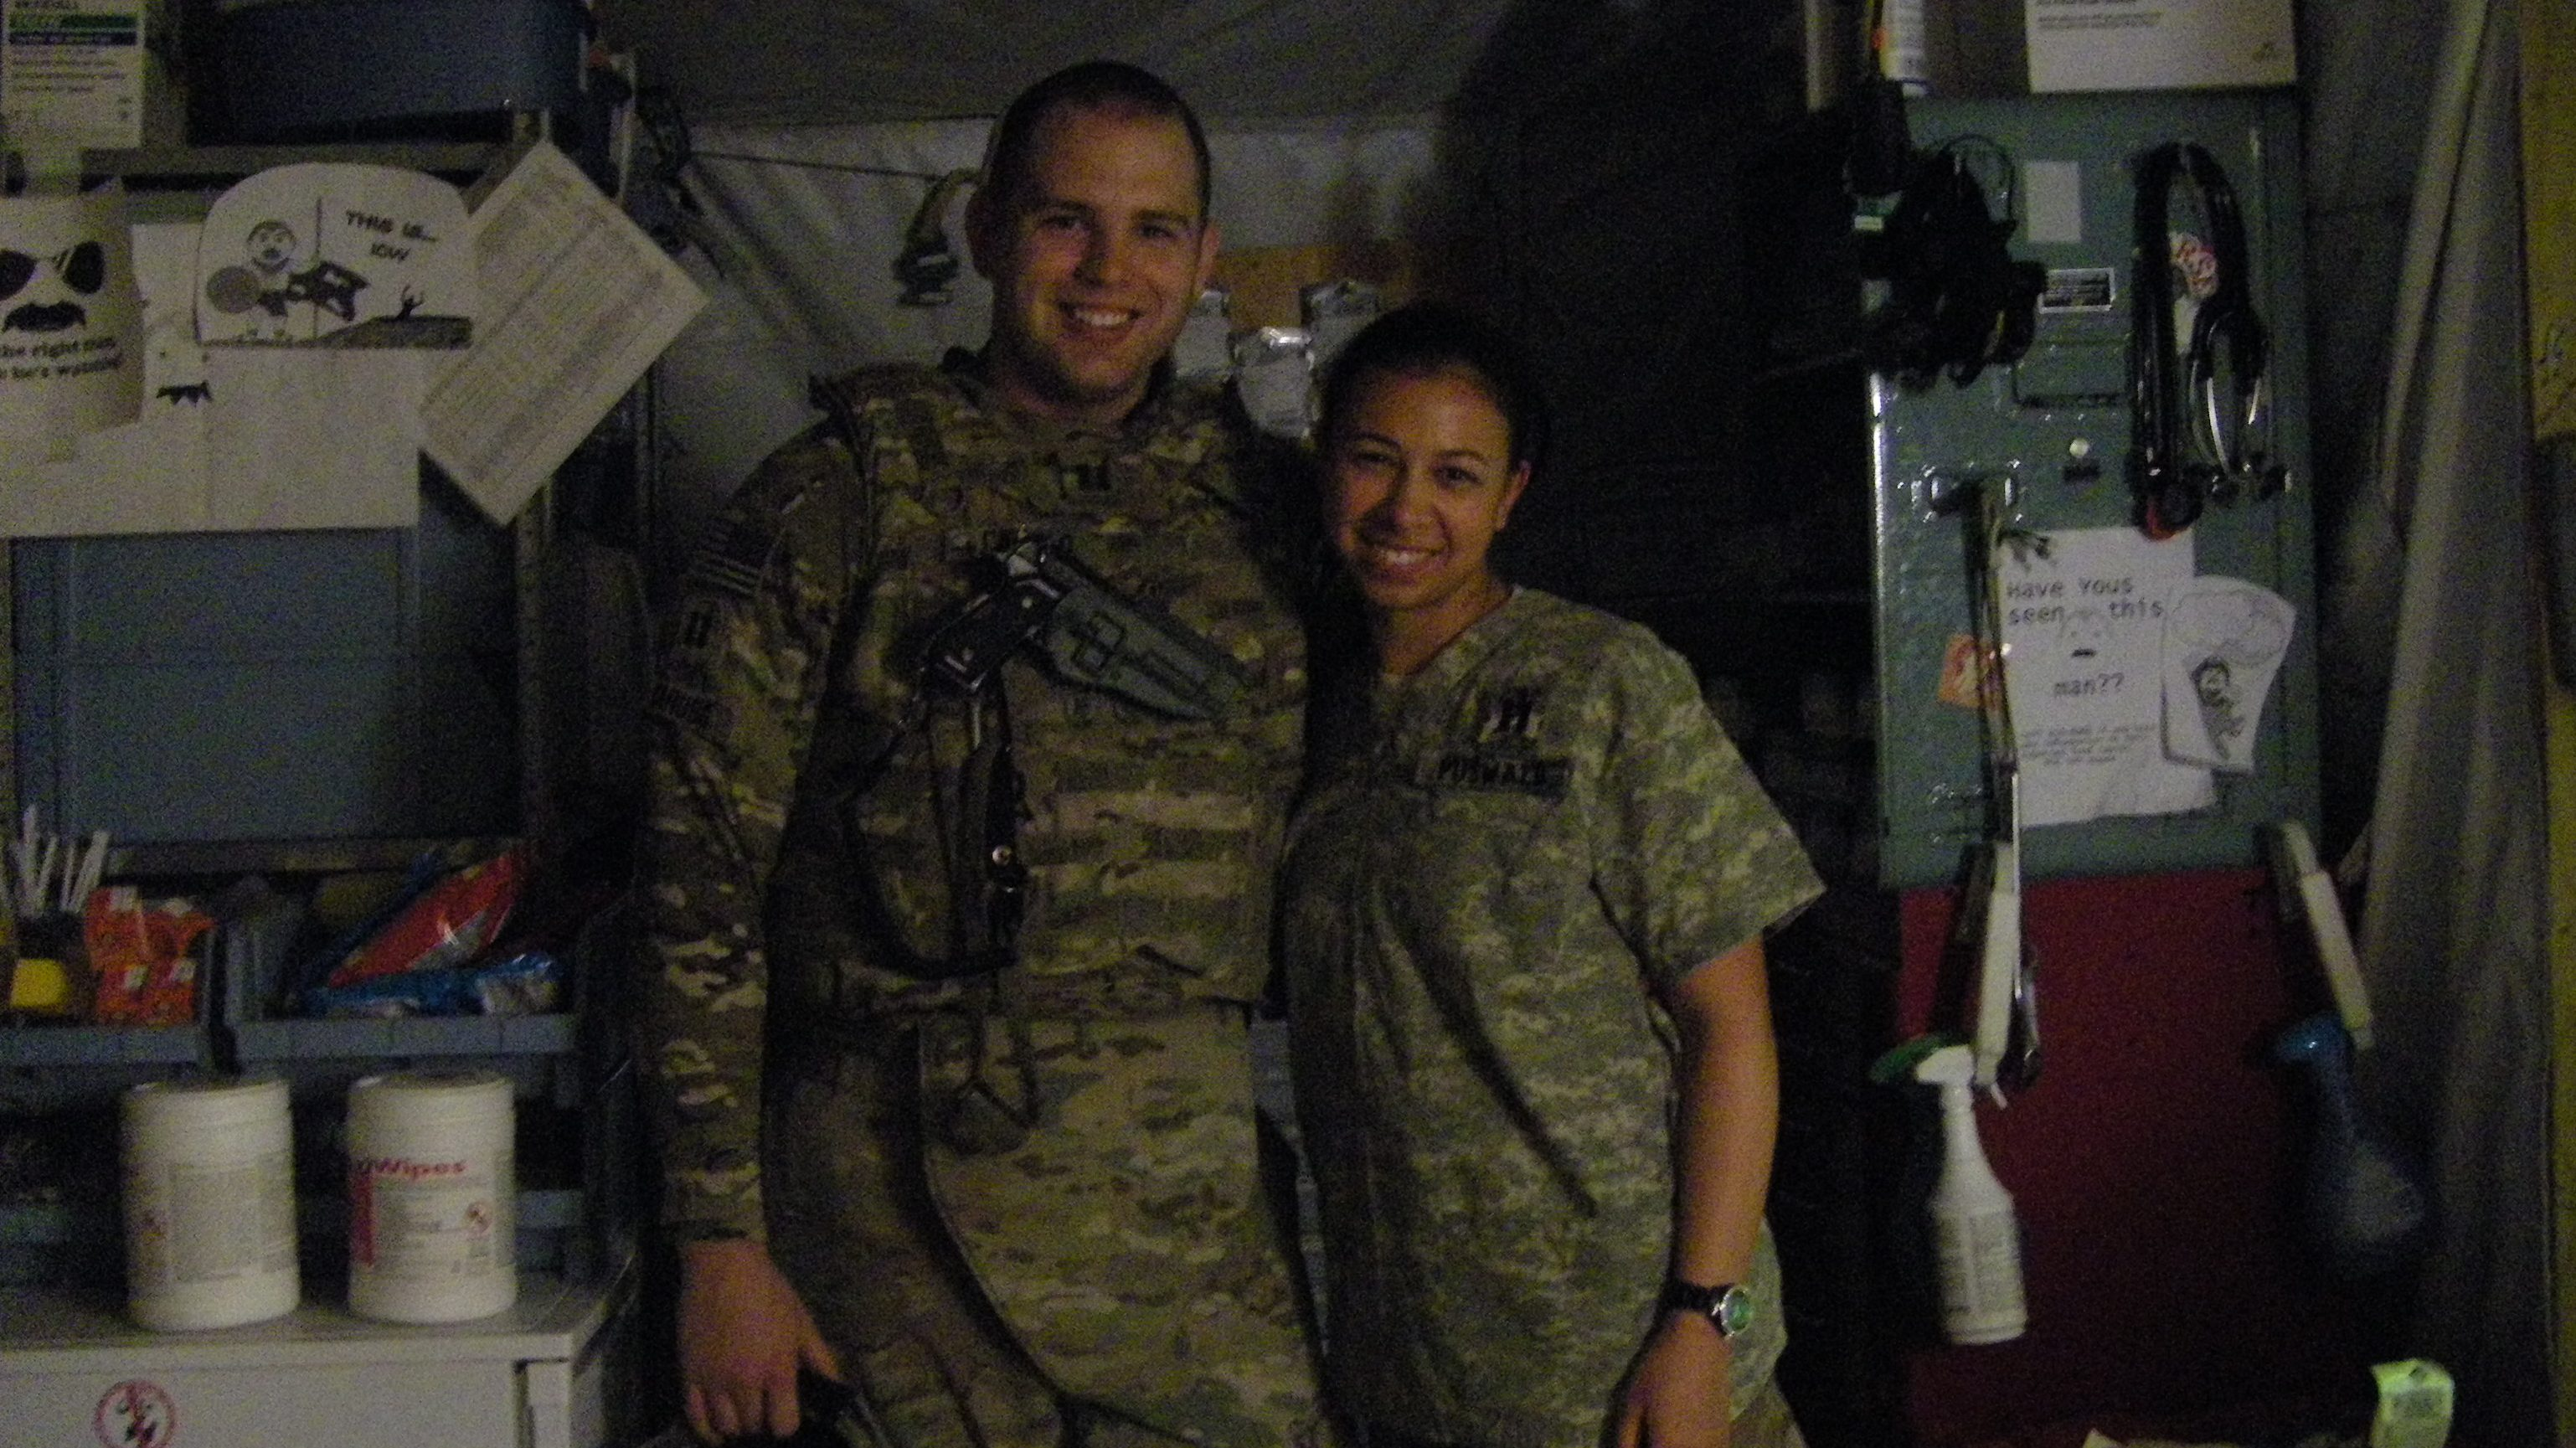 Jacob Caruso and his wife Maria-Cristina deployed in Afghanistan